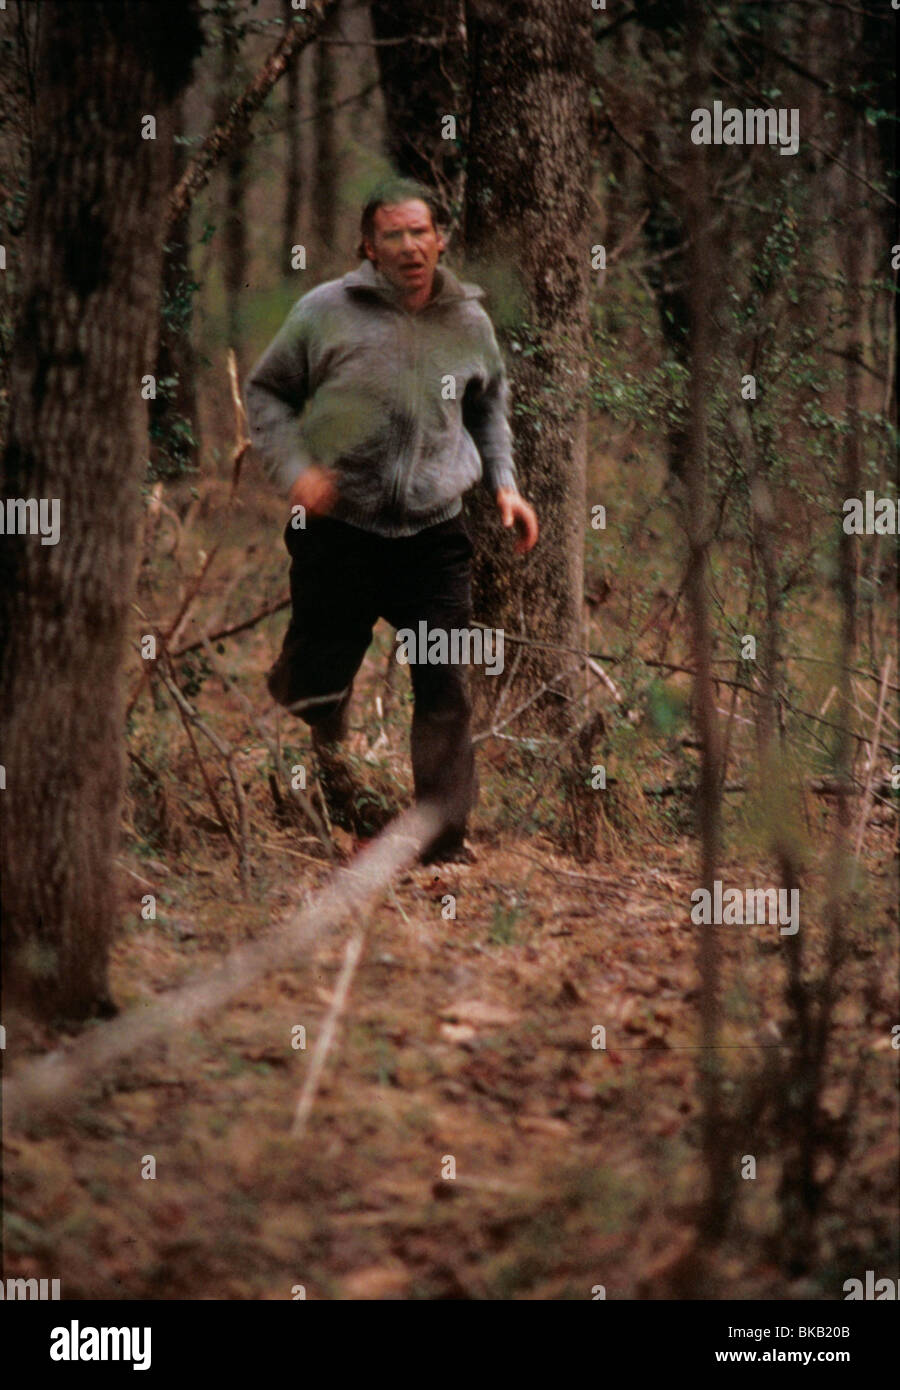 THE FUGITIVE (1993) HARRISON FORD FUG 100 - Stock Image